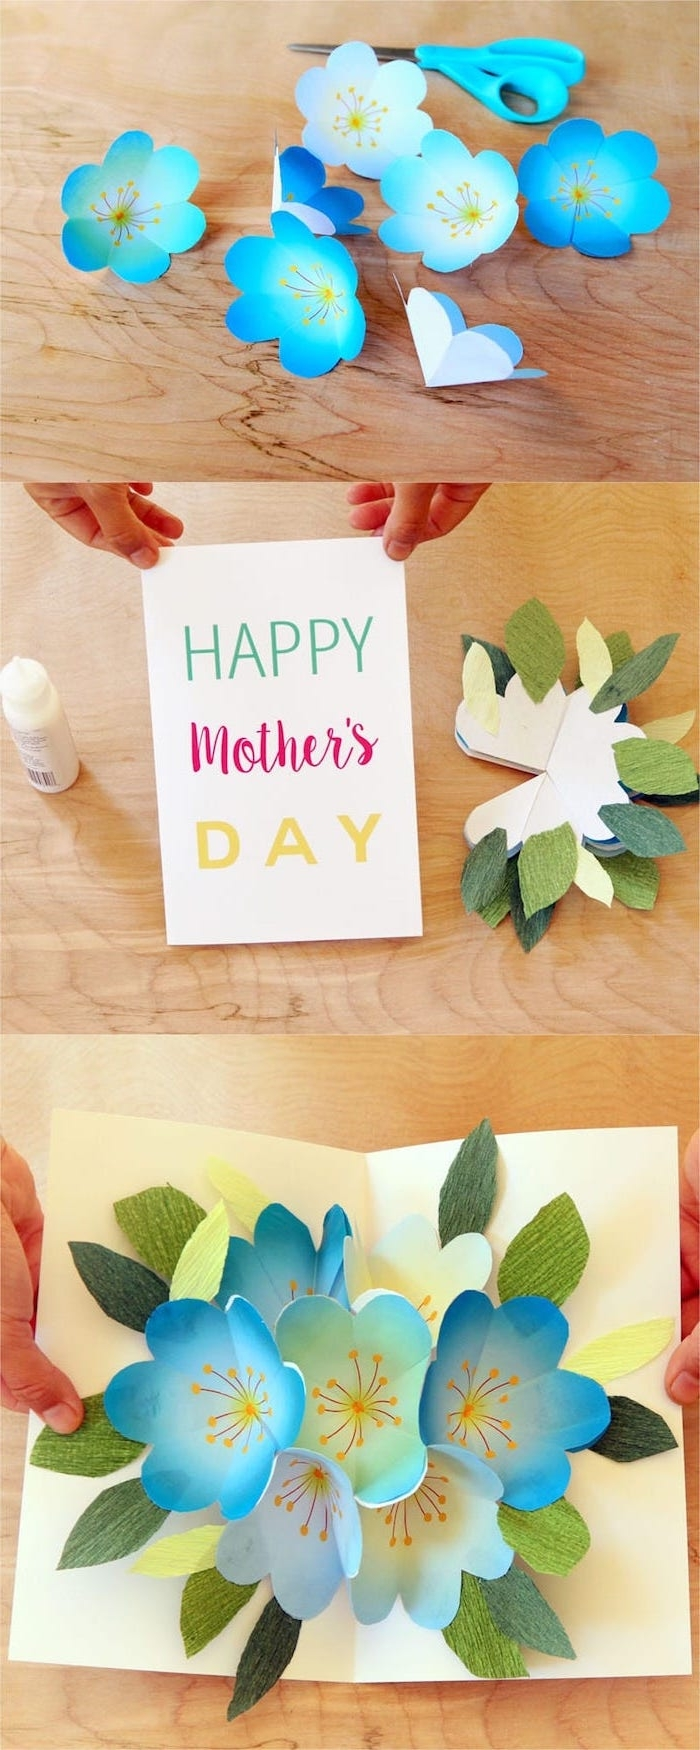 Tinker Pop Up Card Great Idea For Every Occasion